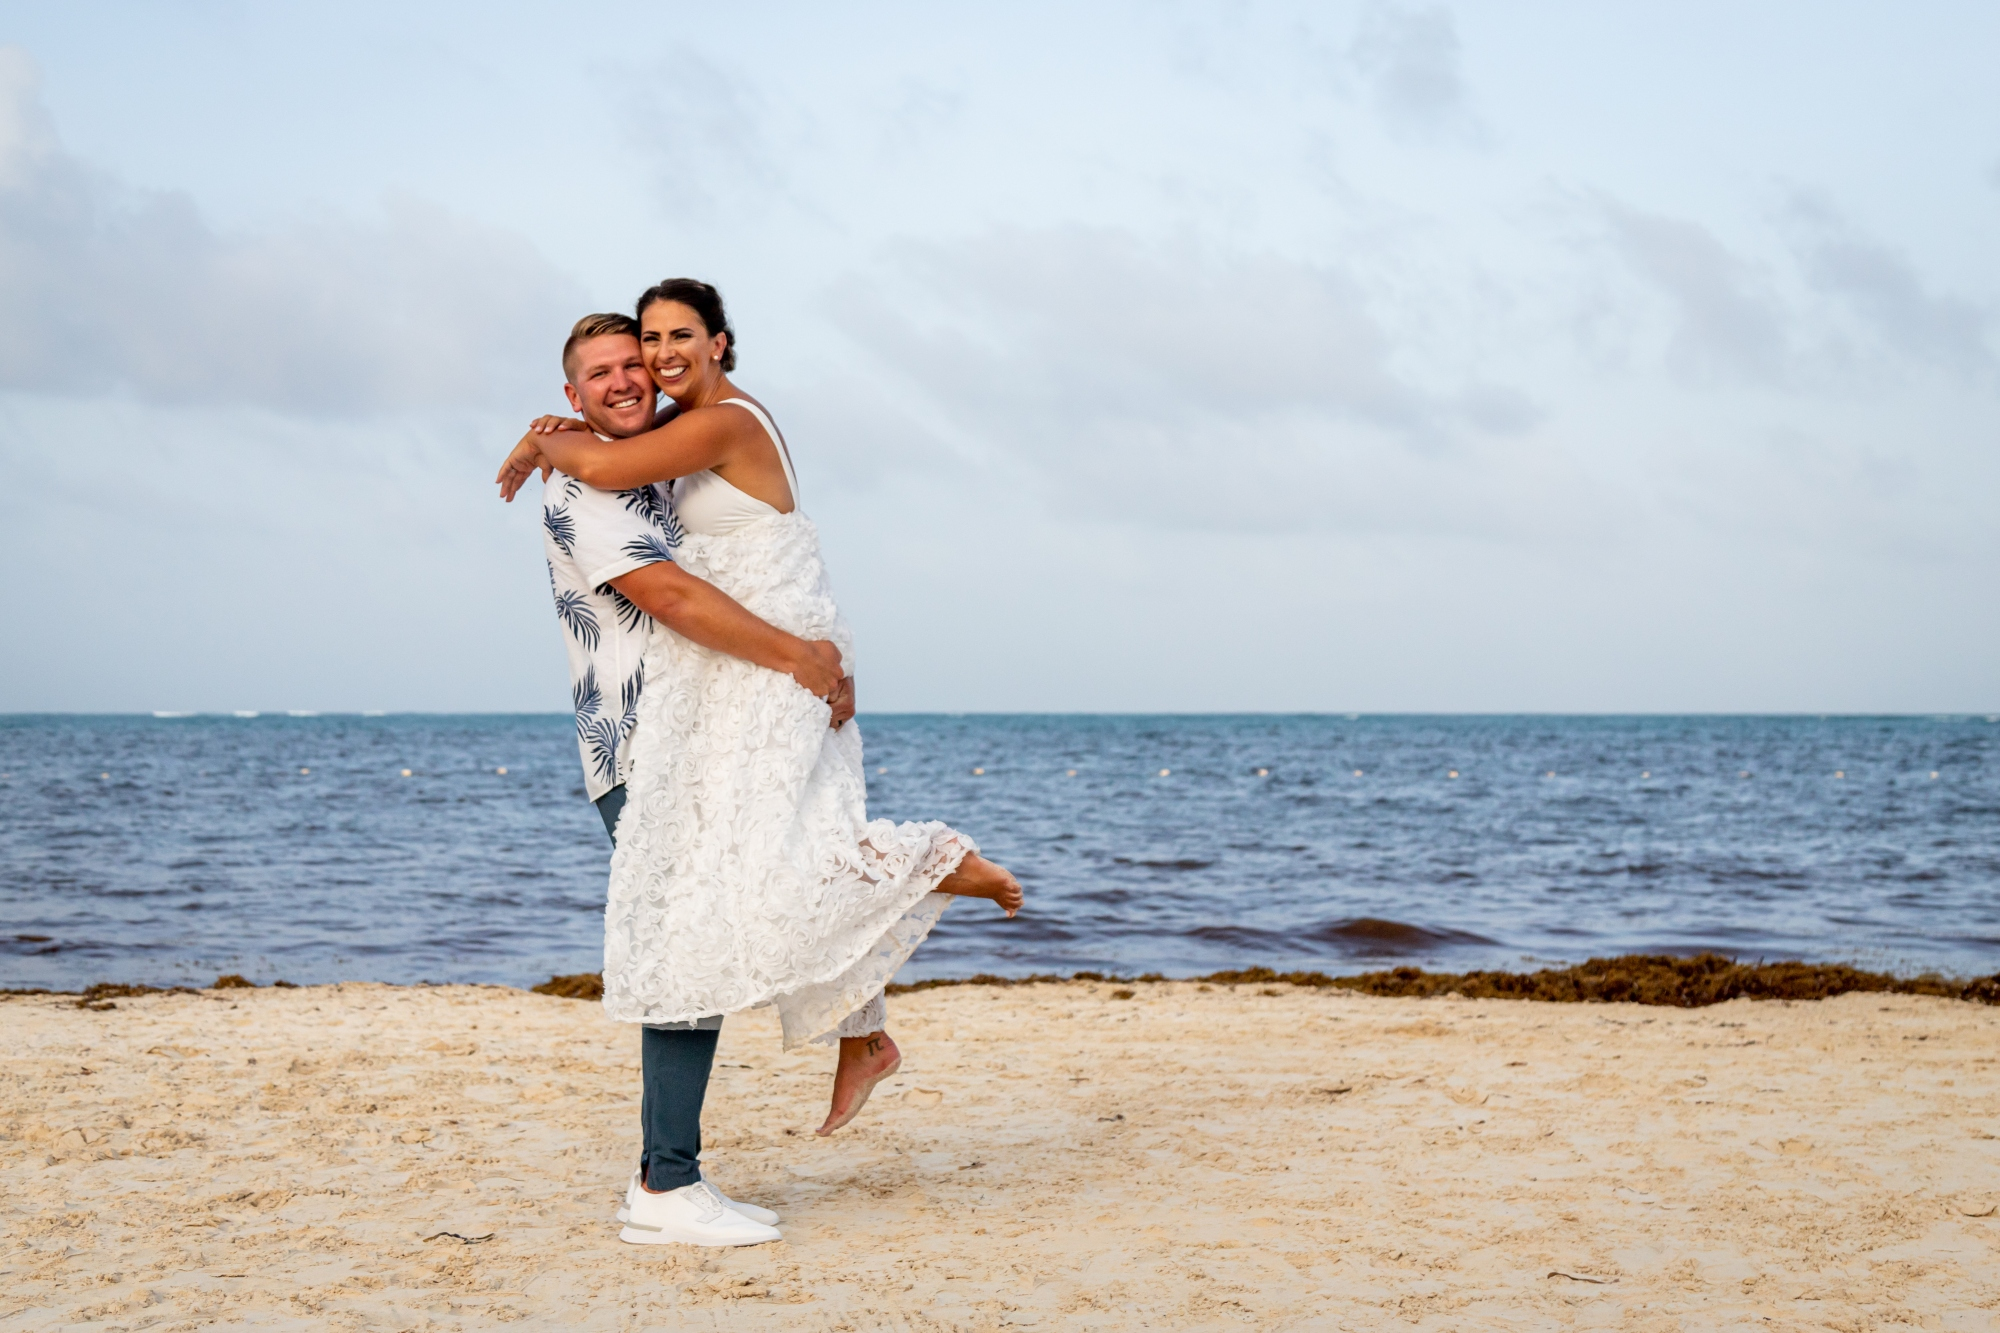 Newlyweds embracing on a beach in Cancun